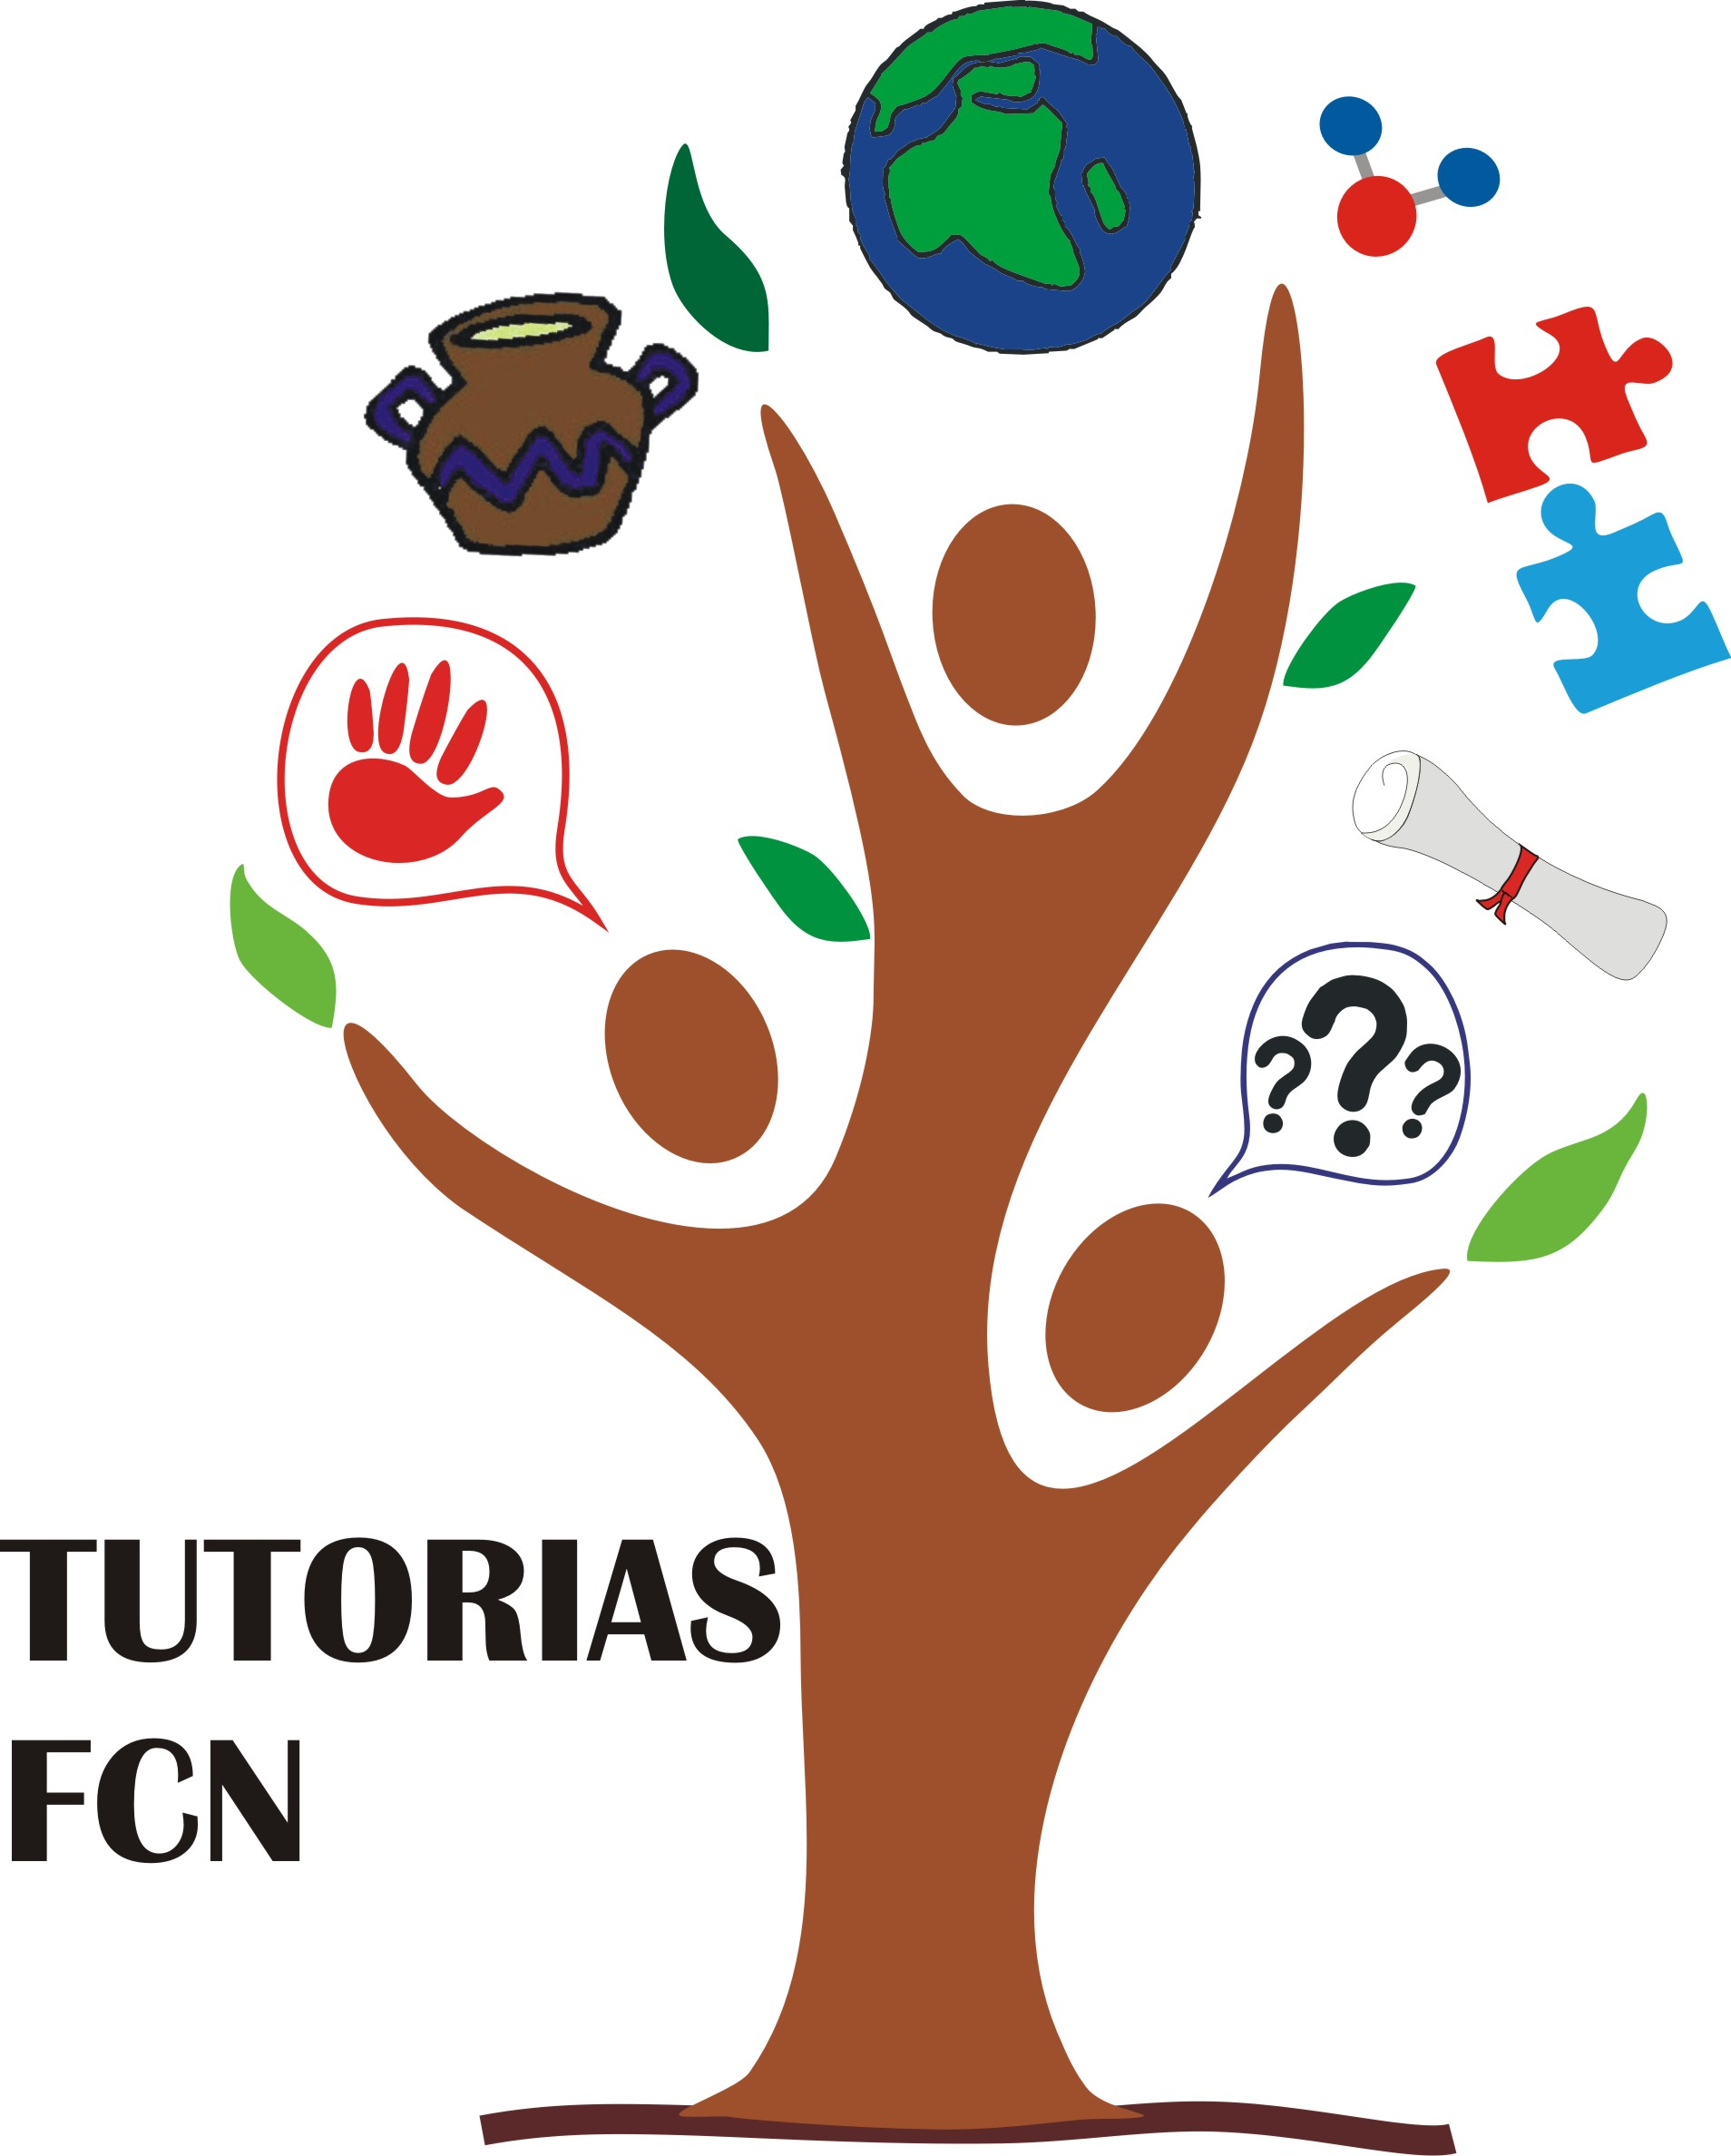 LOGO-TUTORIA